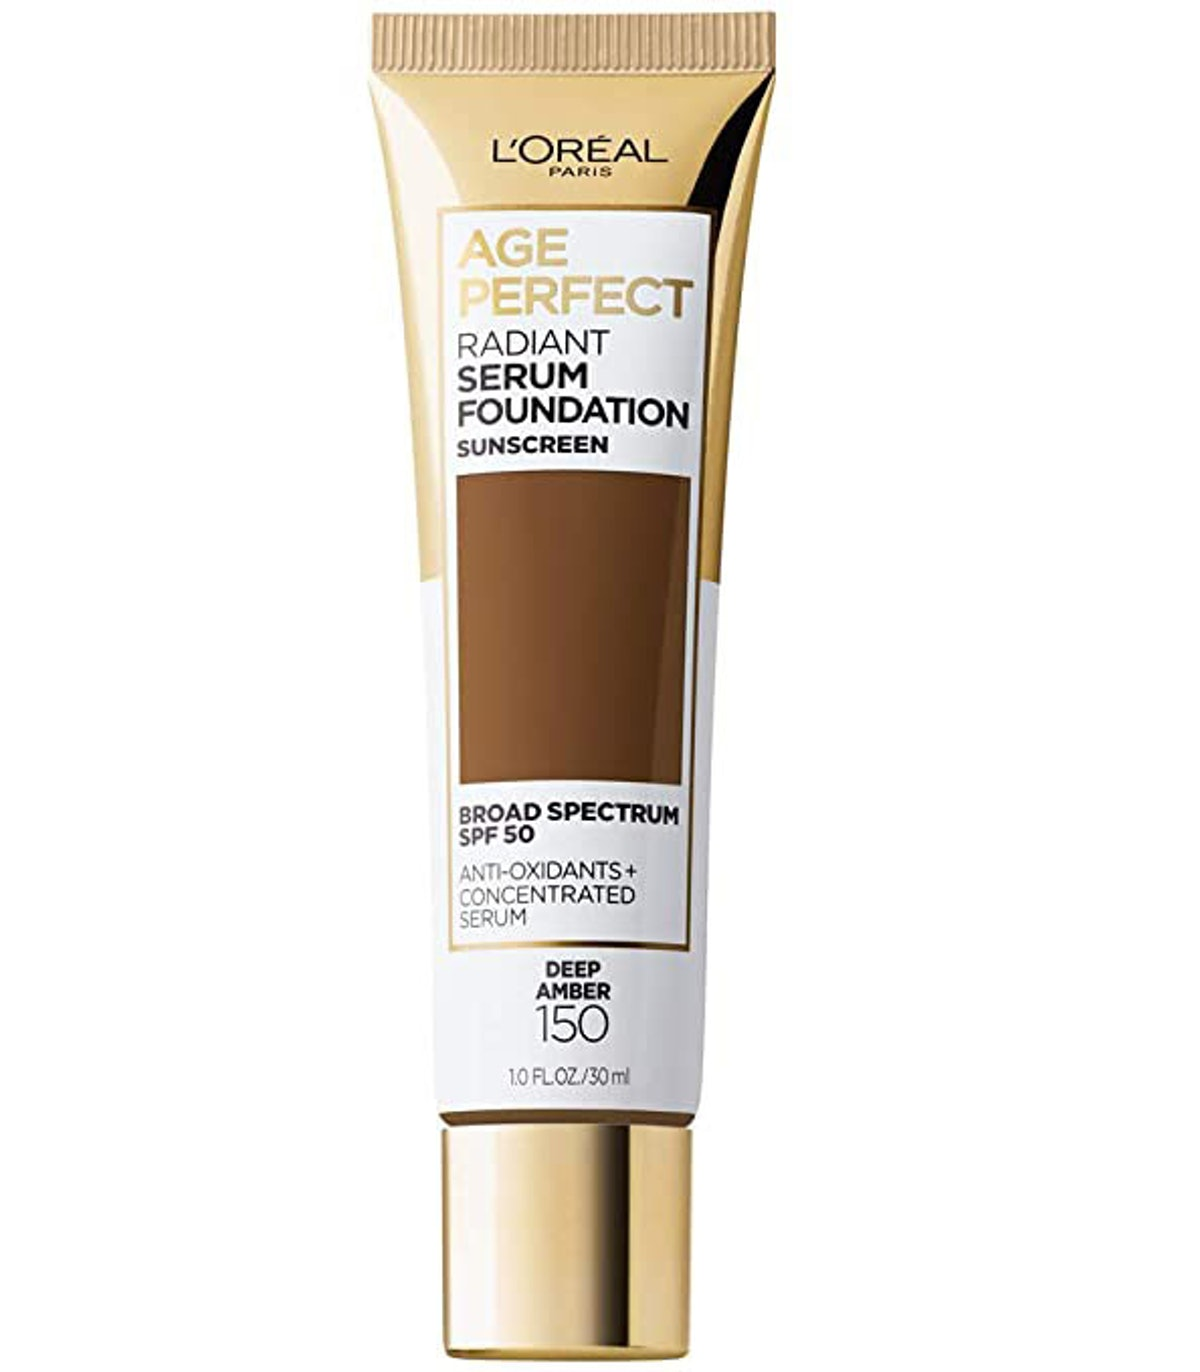 L'Oreal Paris Age Perfect Radiant Serum Foundation with SPF 50